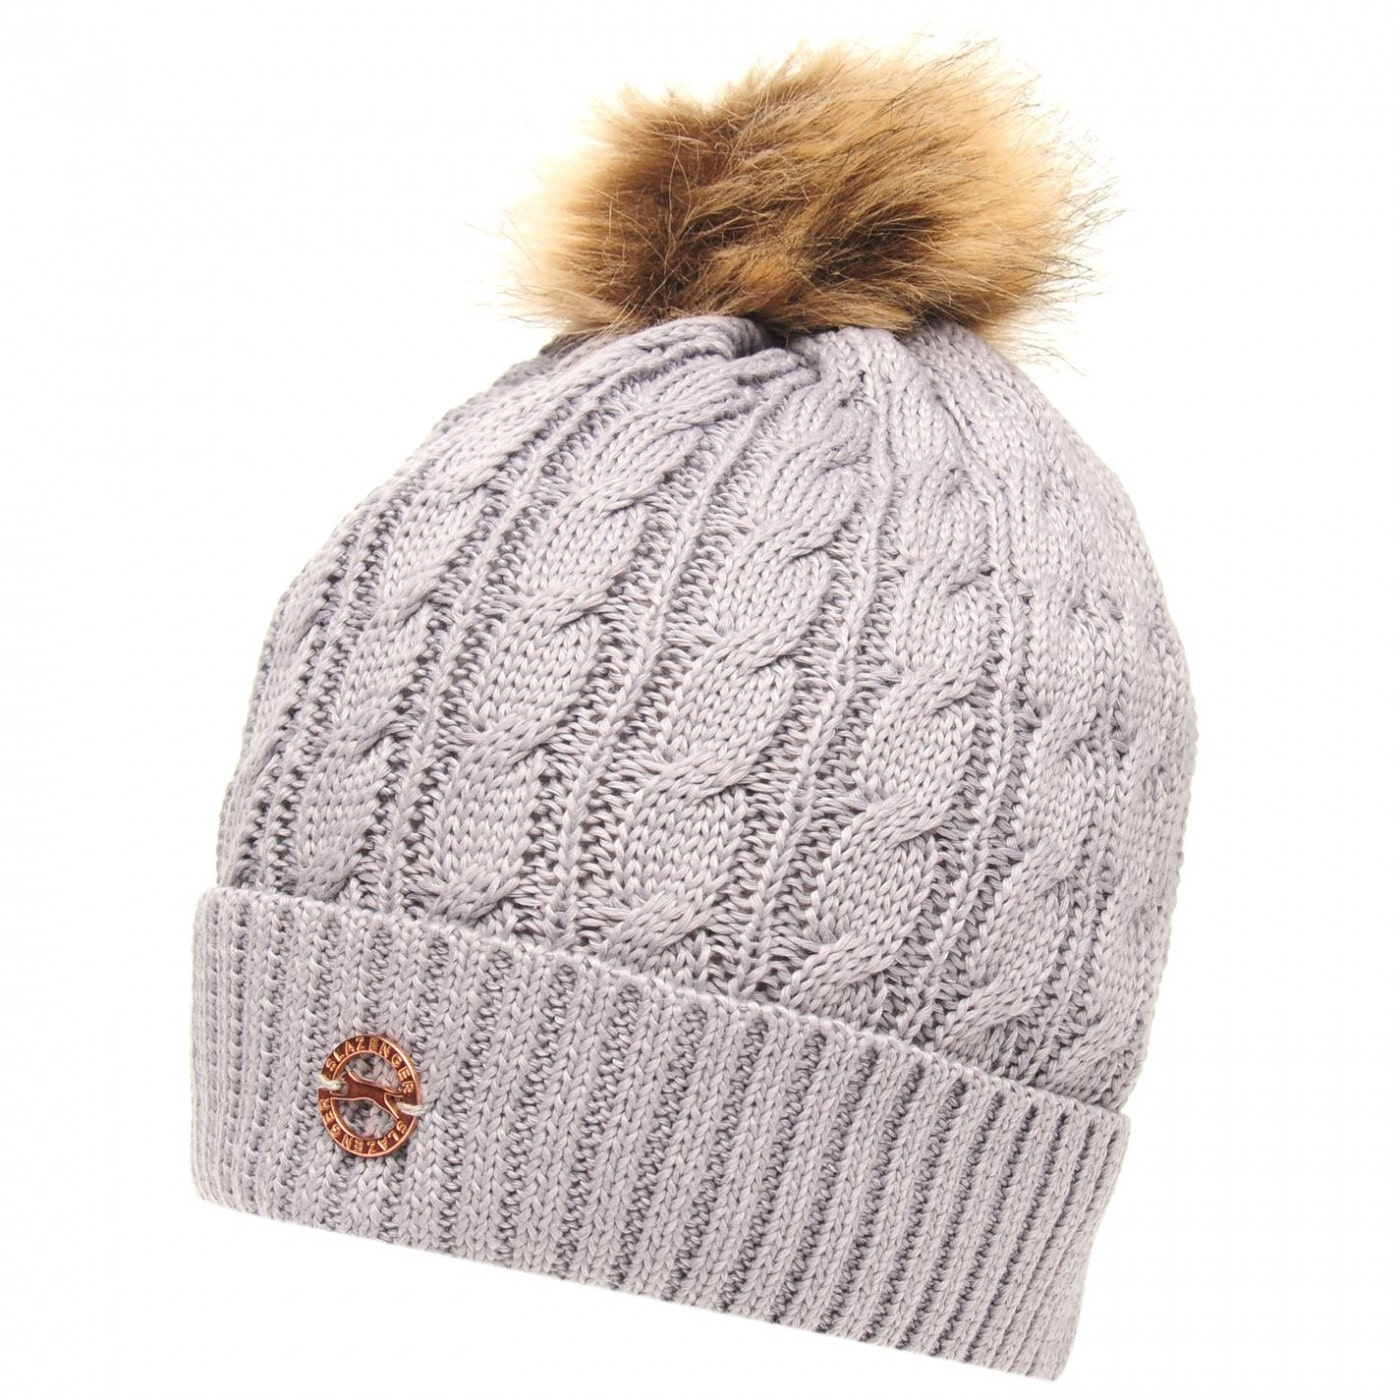 Slazenger Golf Knit Hat Ladies